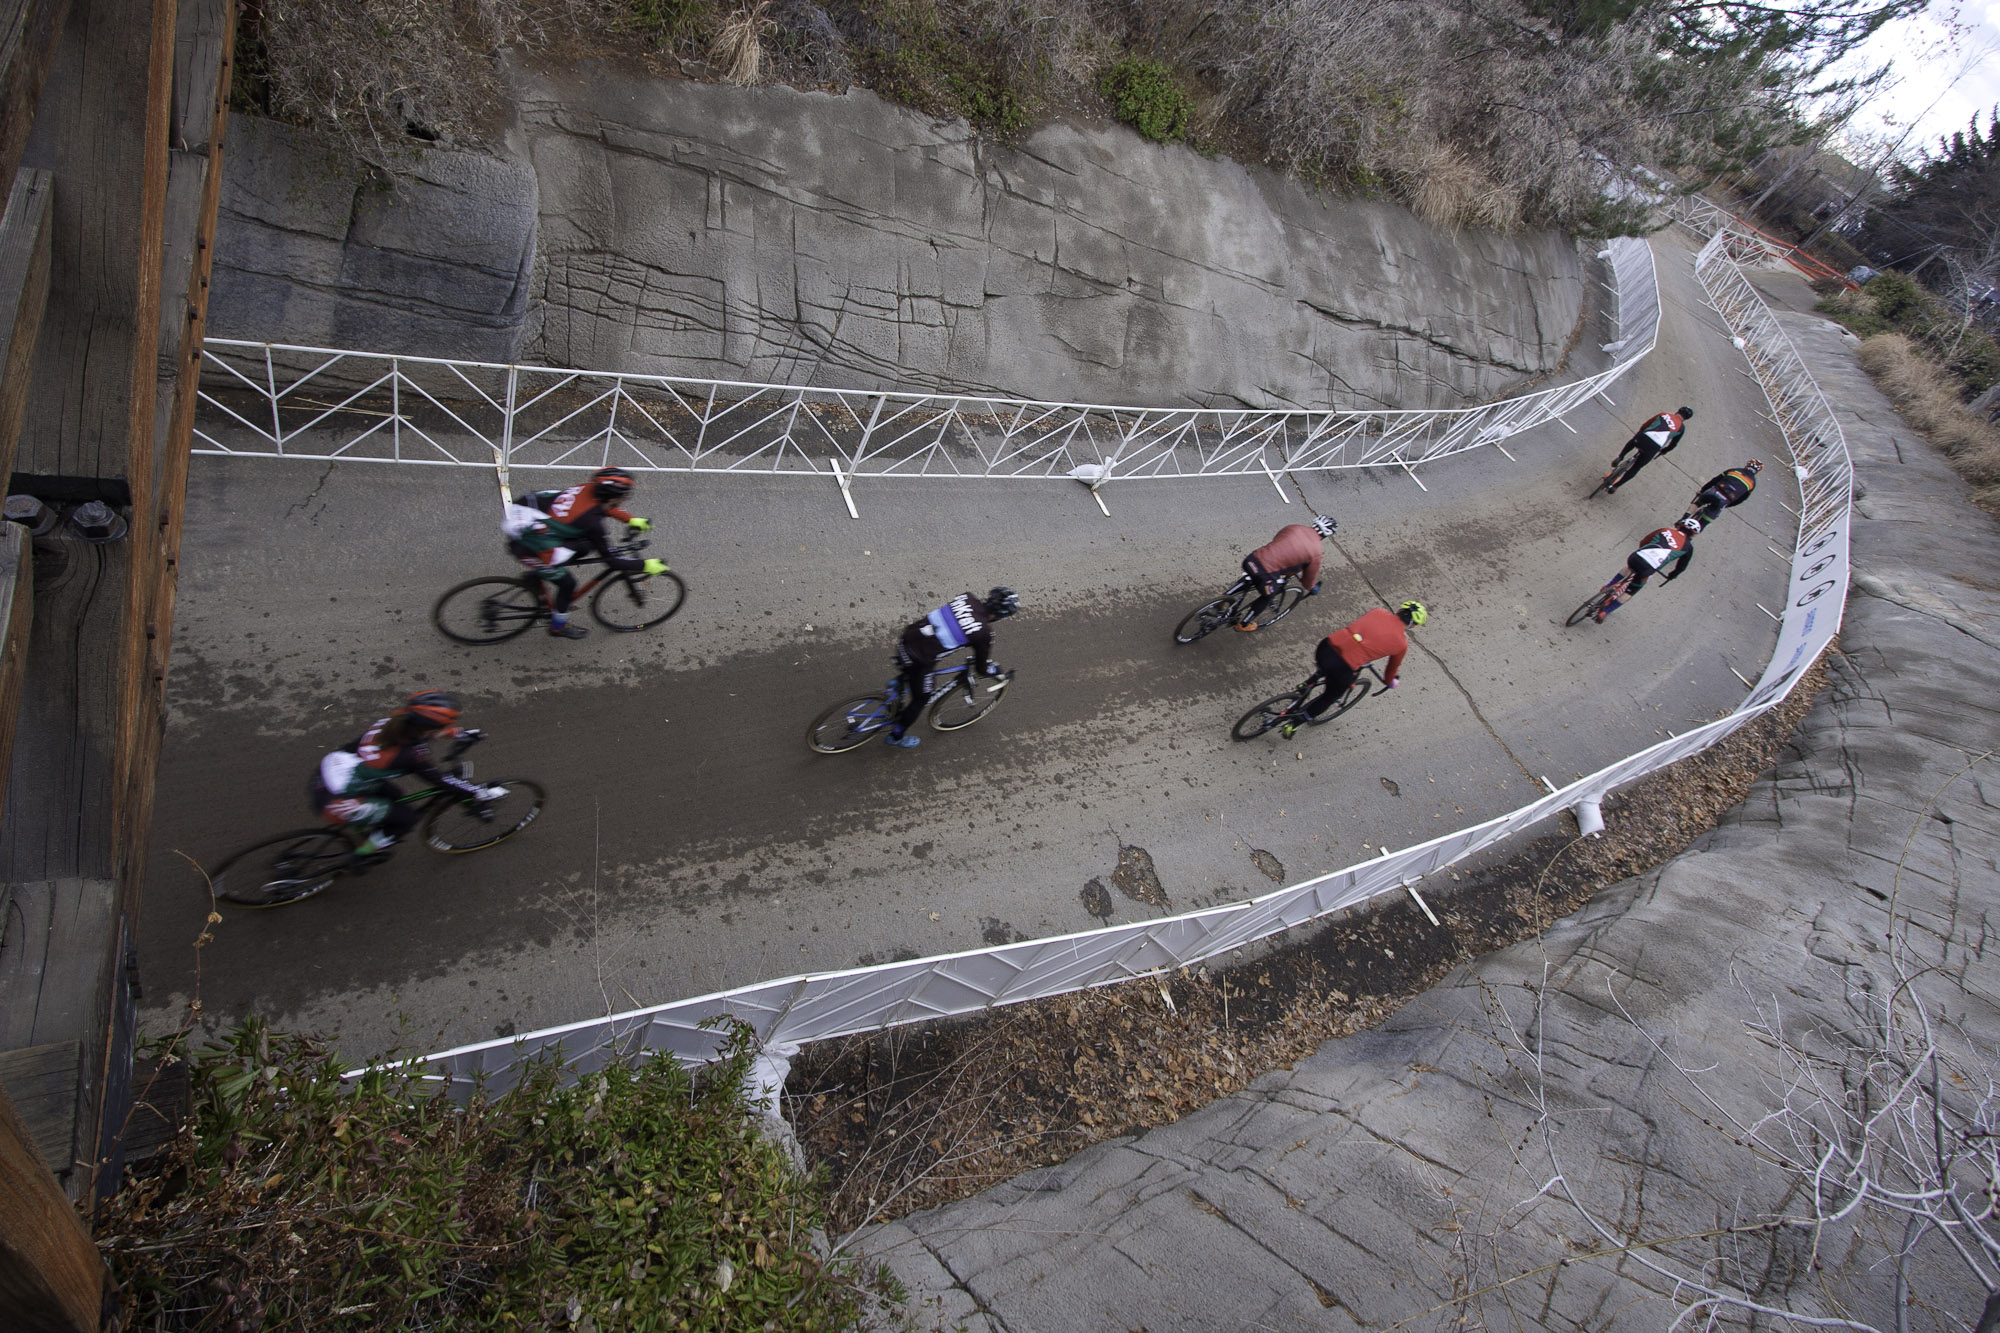 Cyclists ride under a bridge during a Cyclocross race